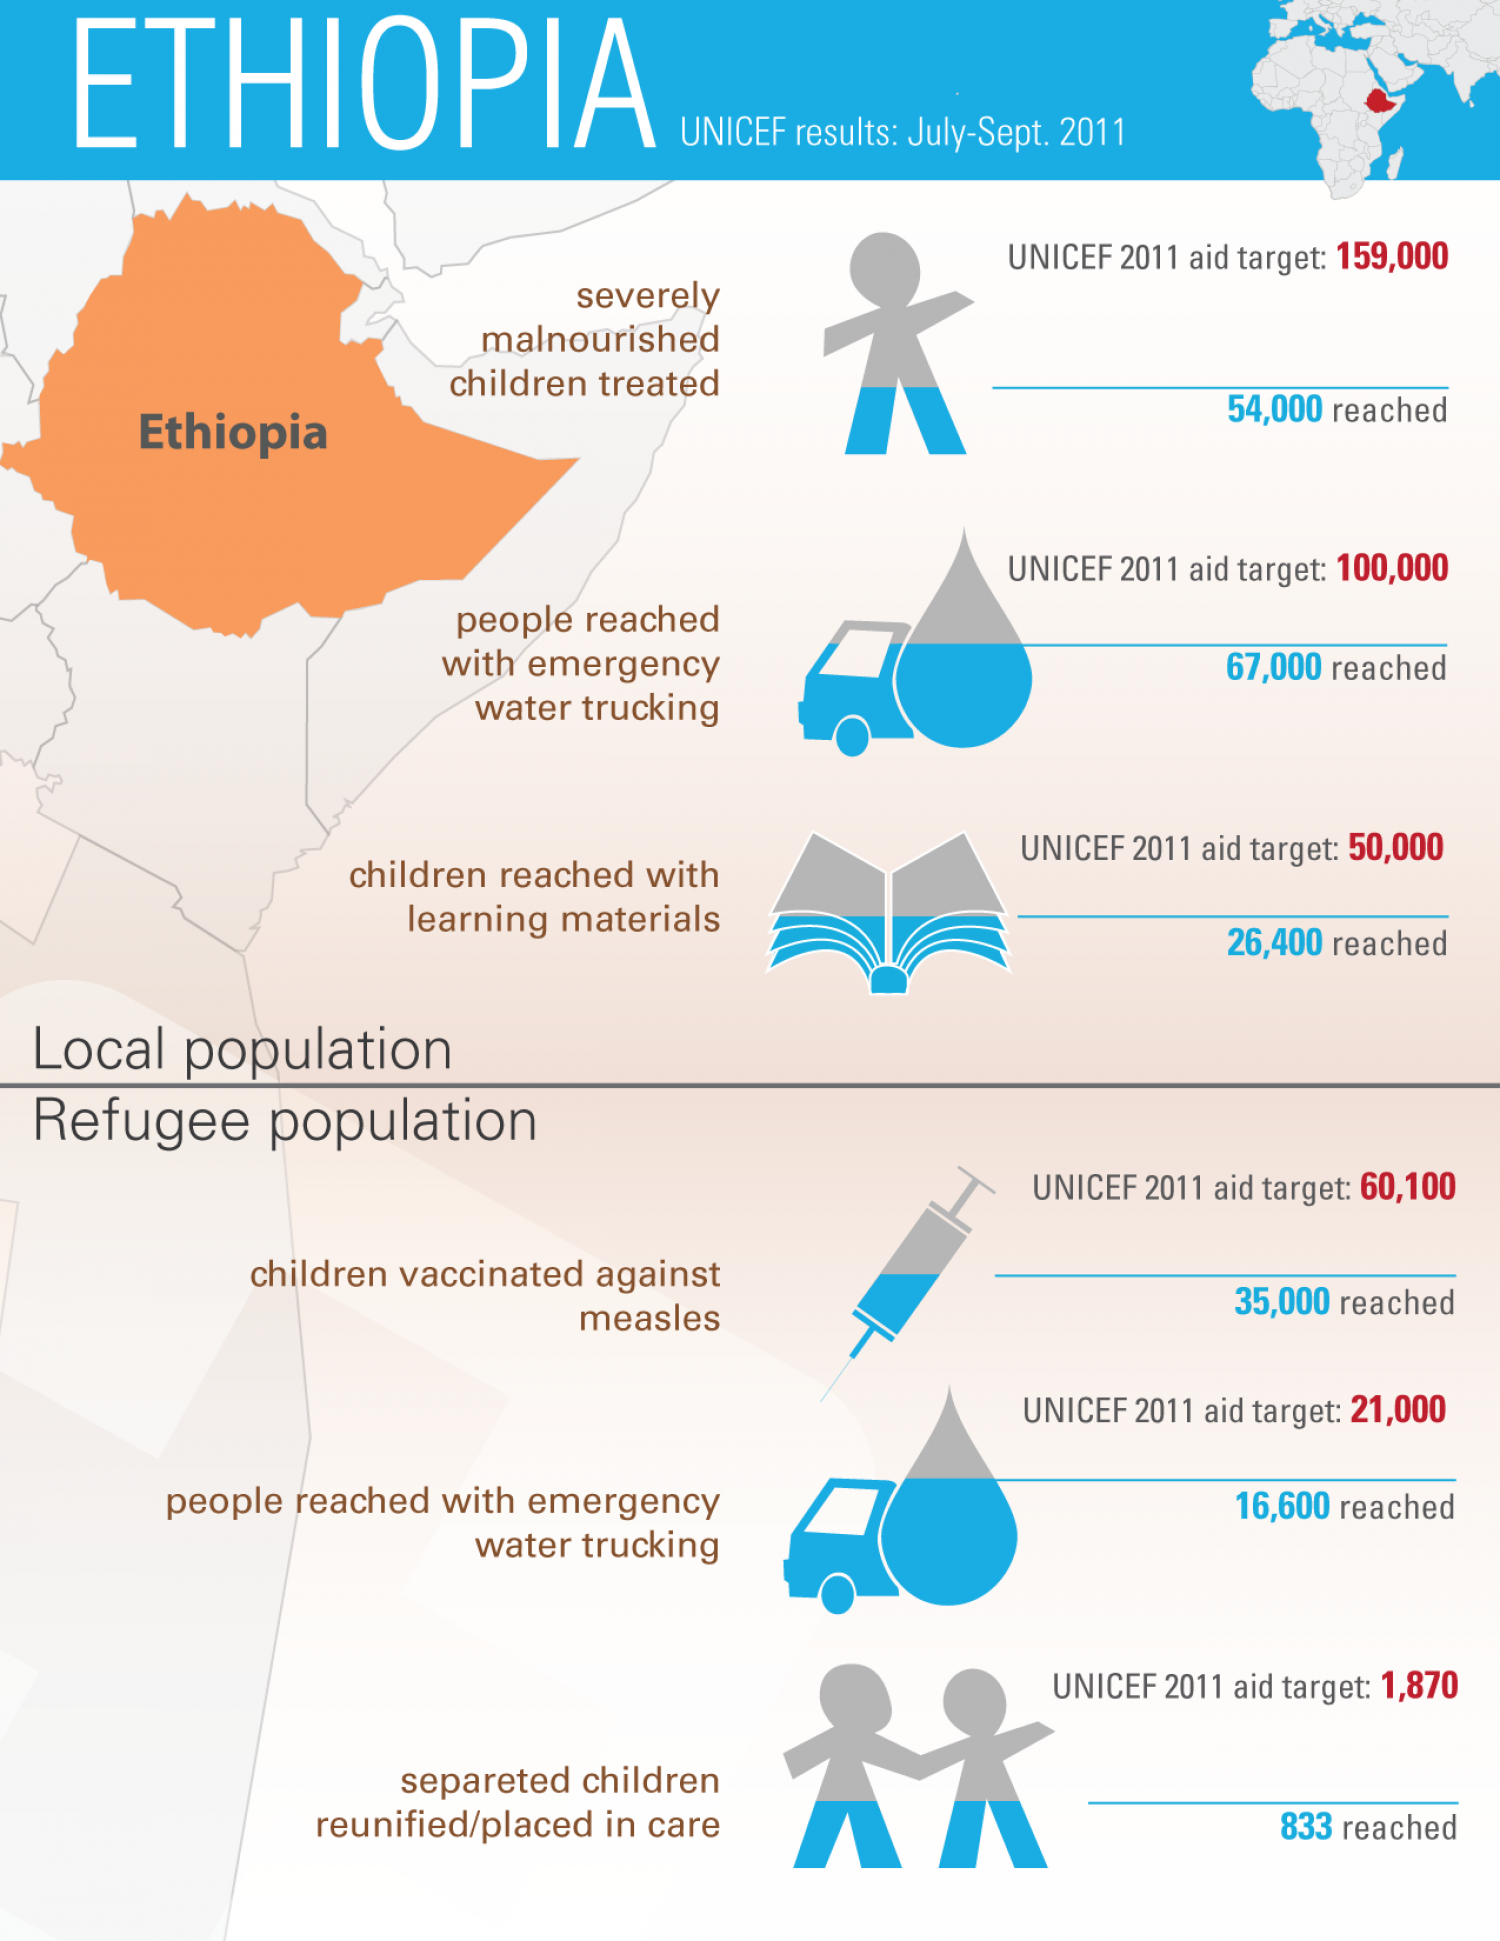 Ethiopia - UNICEF results July-Sept 2011 Infographic